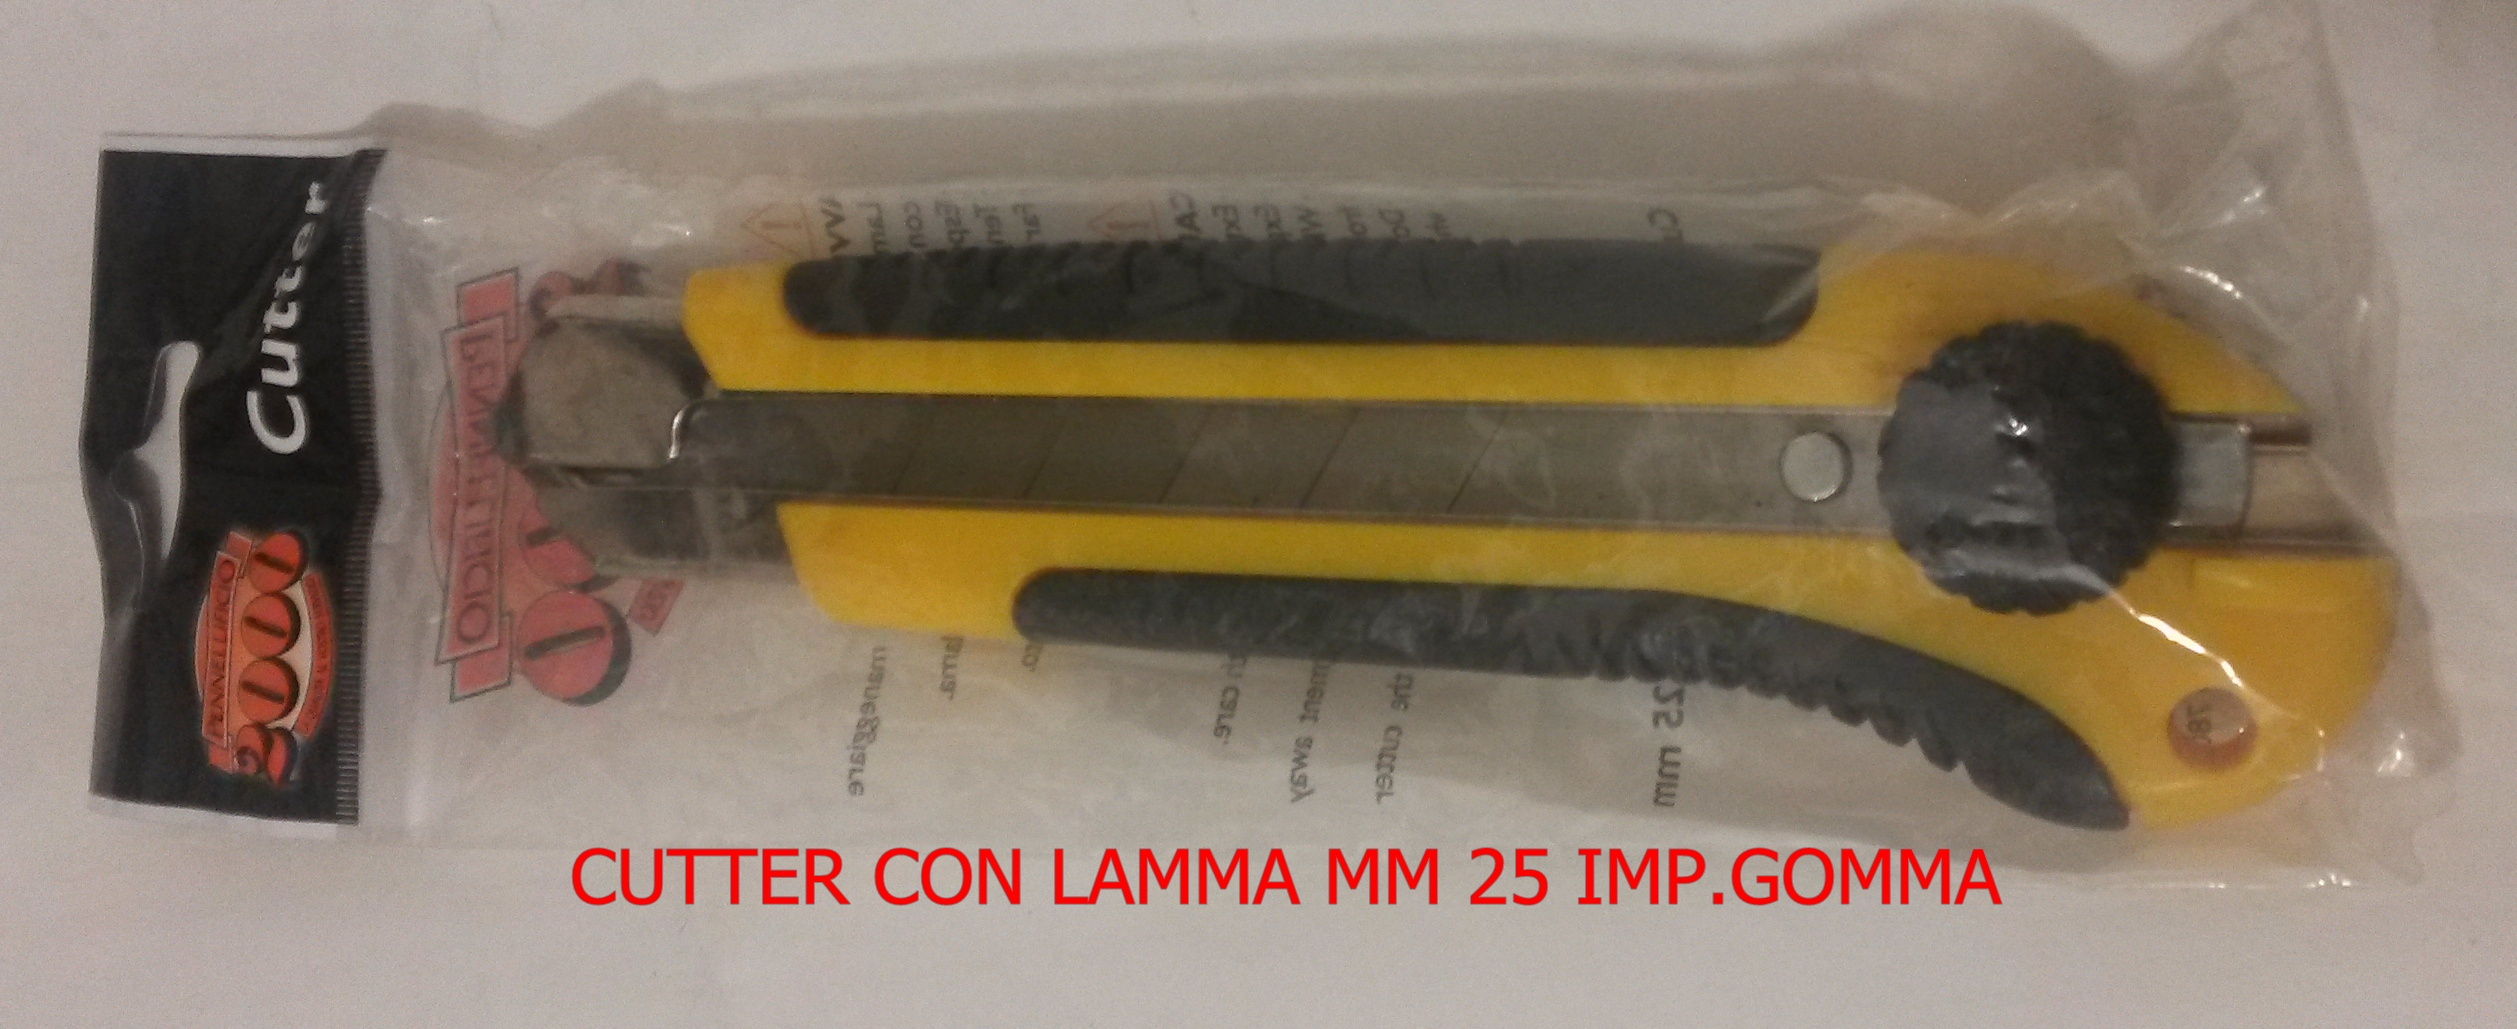 CUTTER CON LAMA MM 25